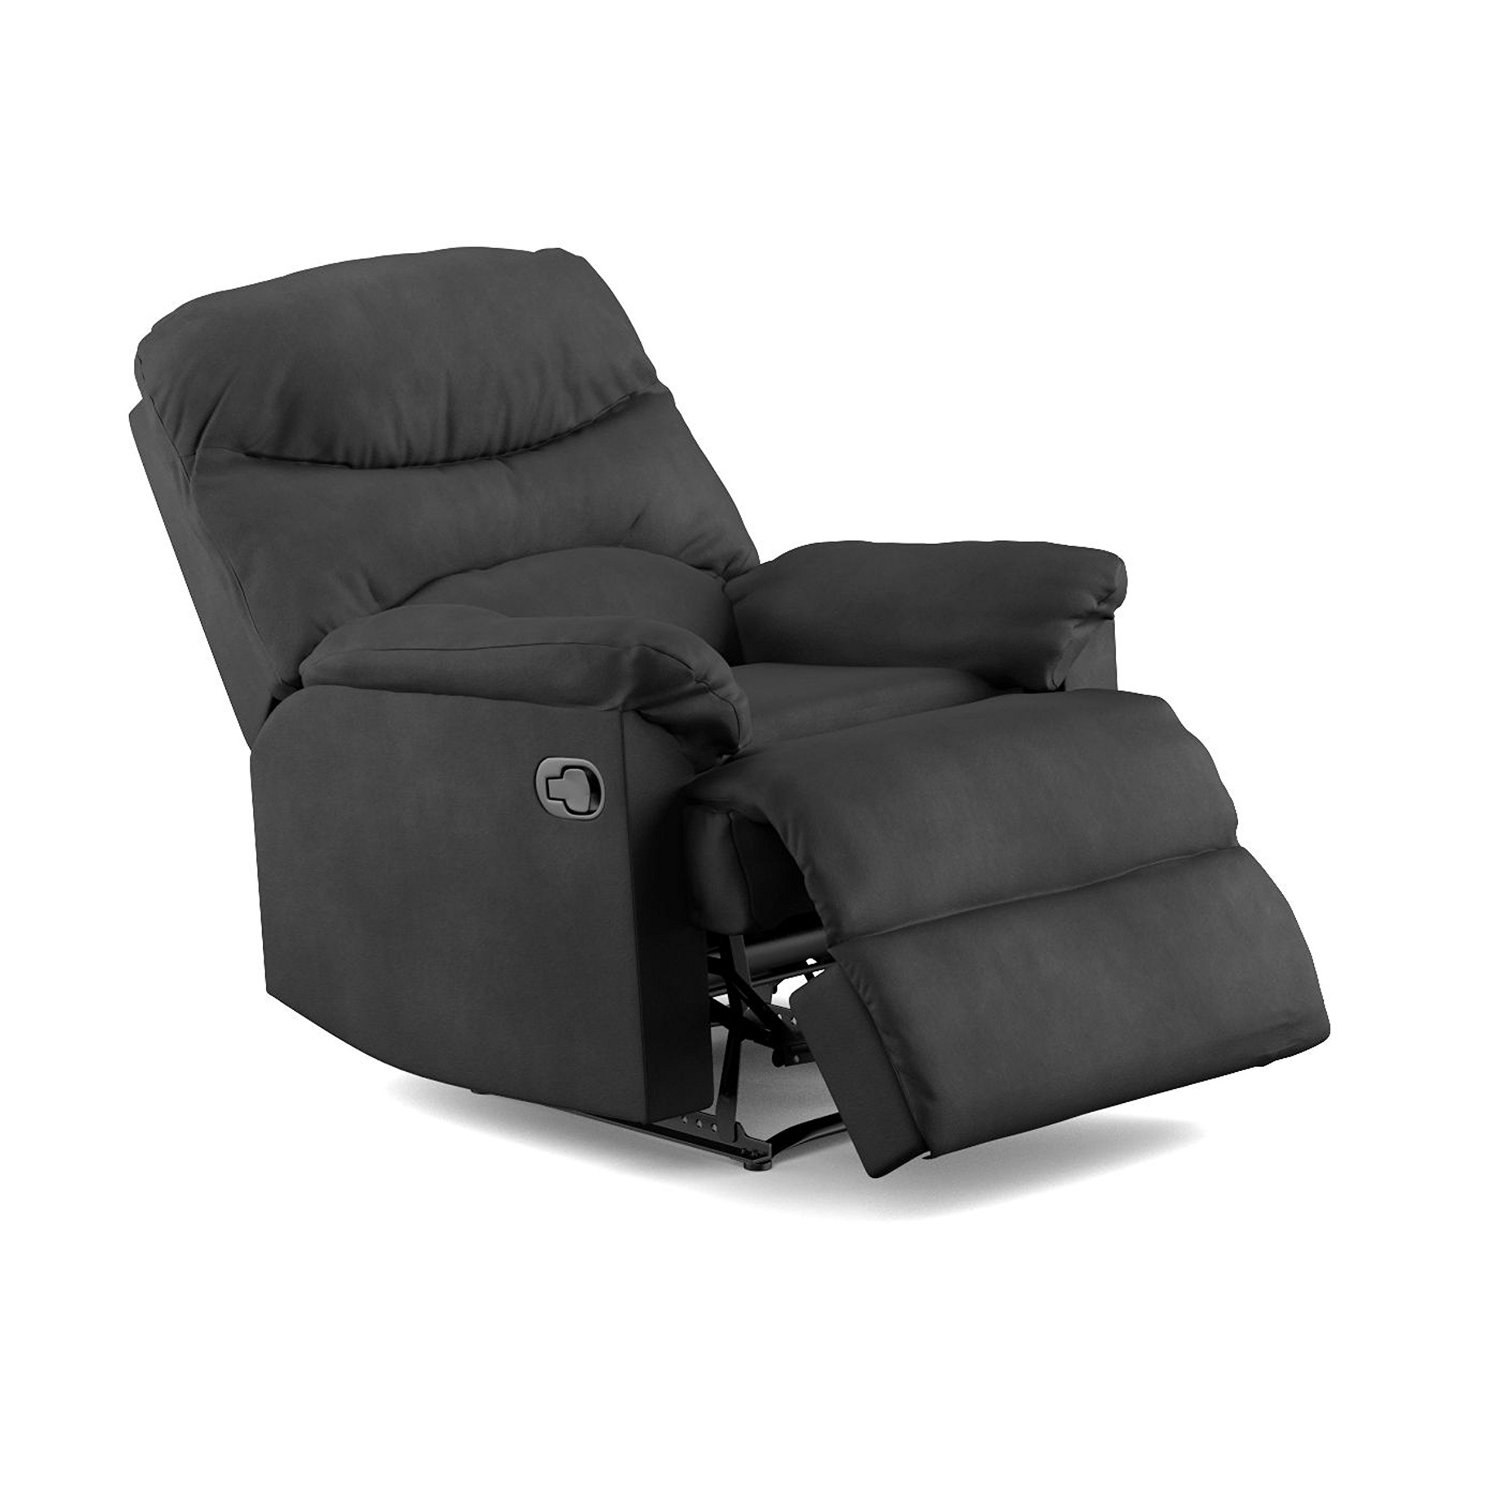 best chair support for lower back pain unfinished kitchen chairs recliner and the